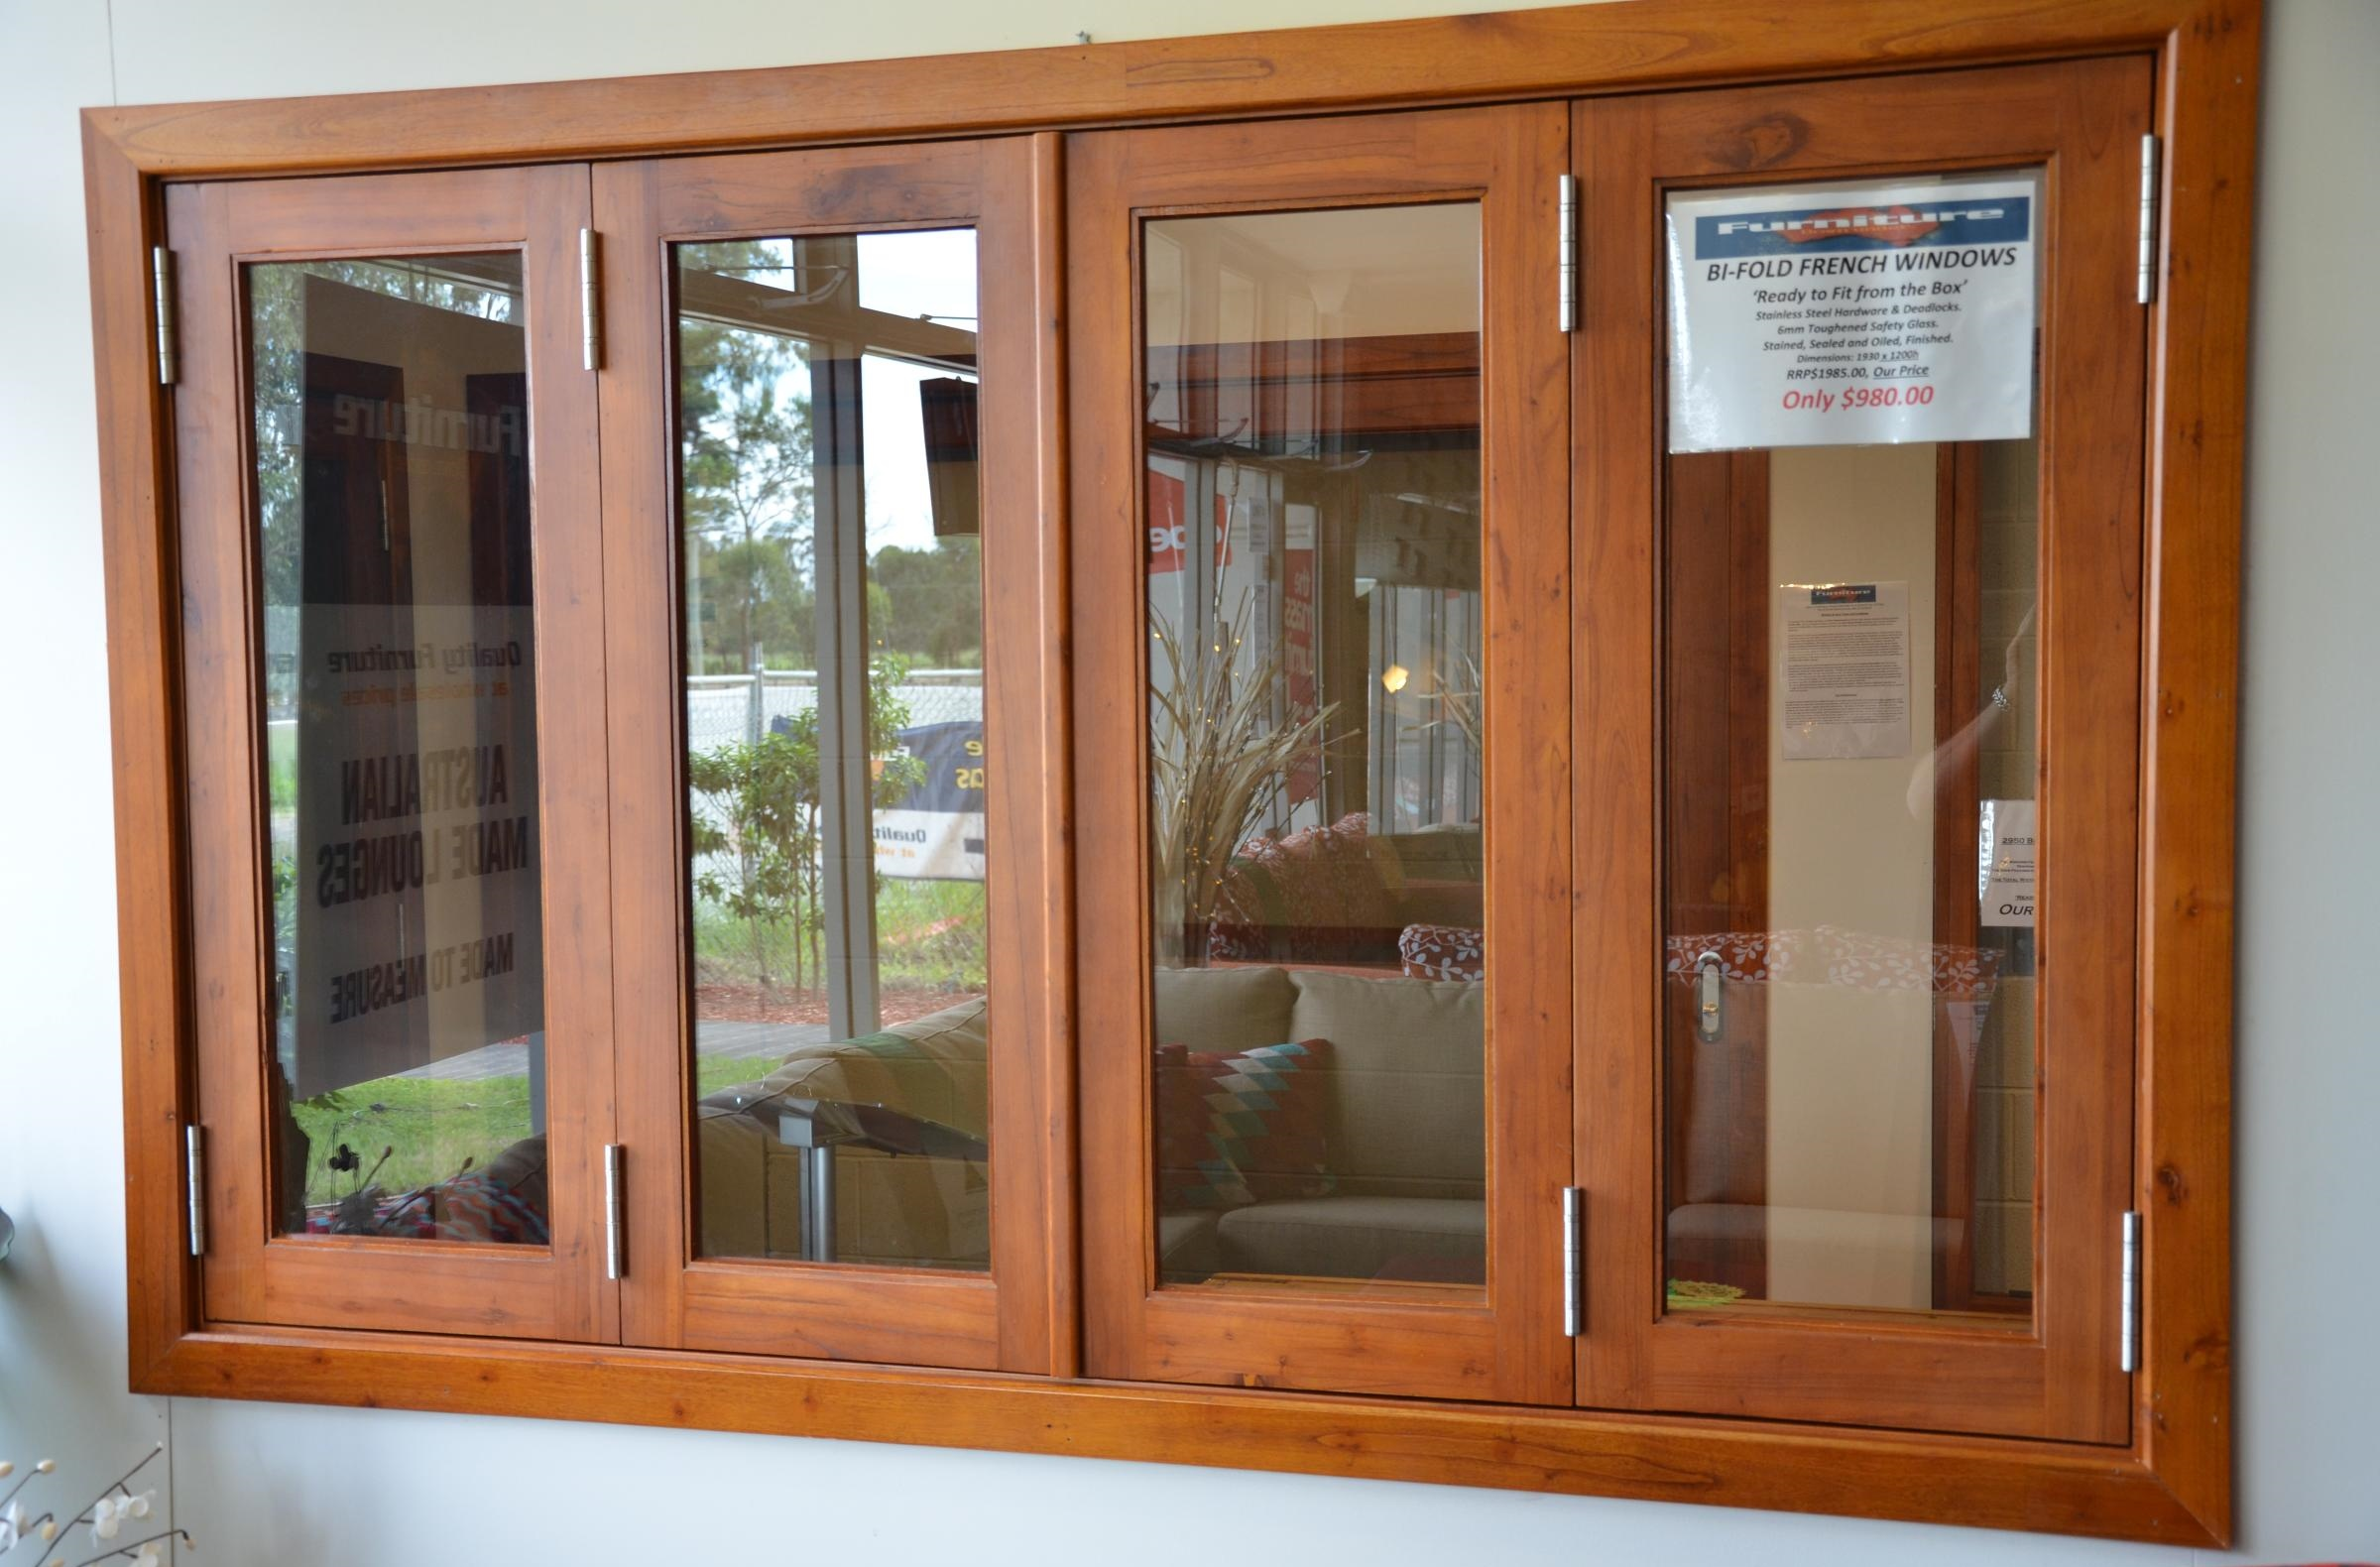 Outdoor Blinds Melbourne Wonderful And Great Outdoor Window Blind